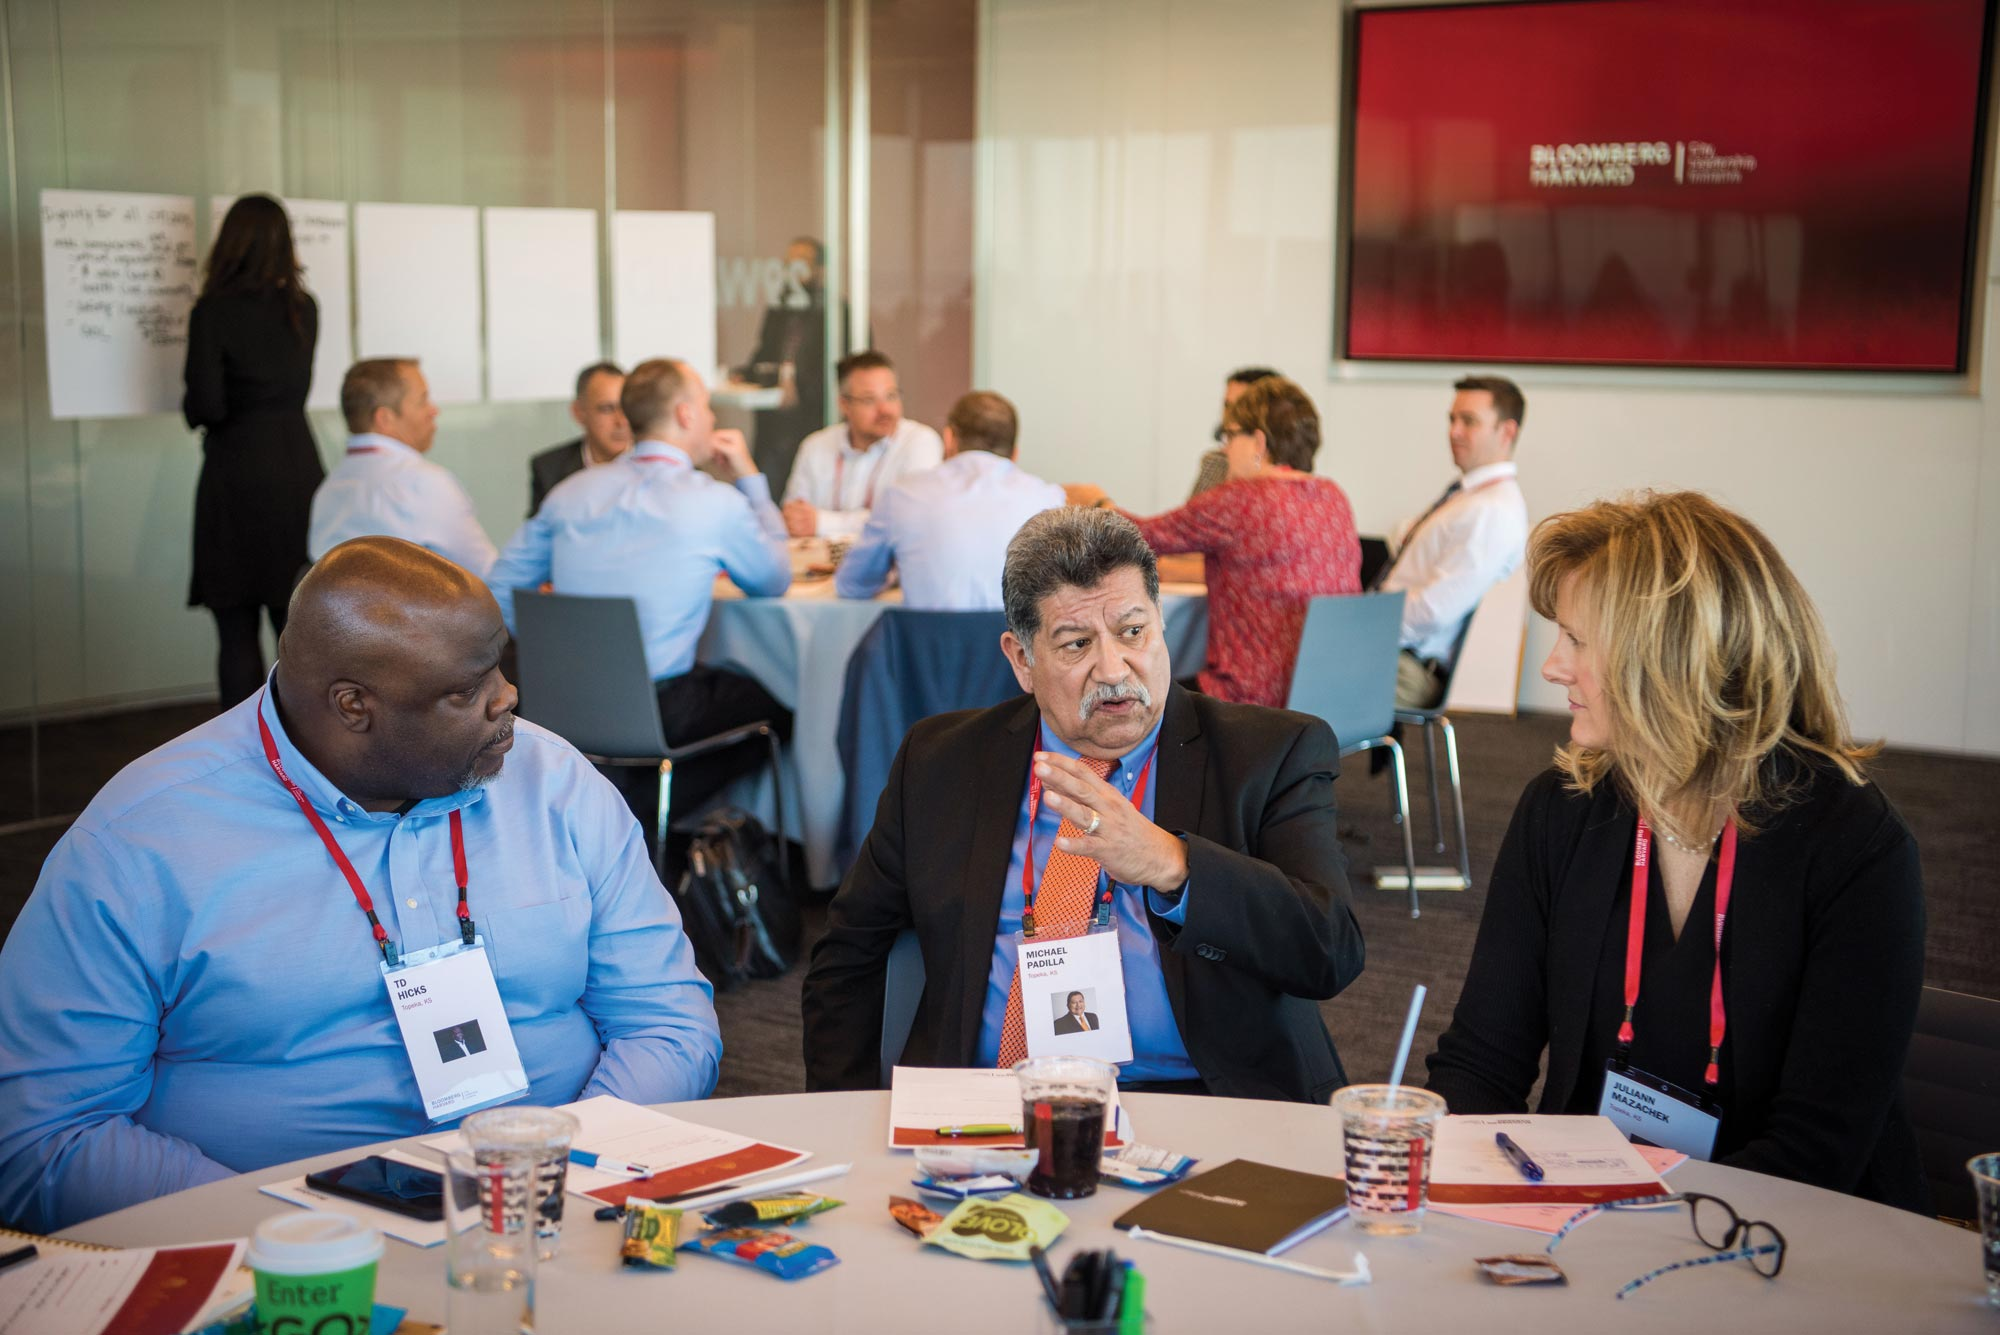 Senior city hall staff members convene in New York City to learn leadership and management strategies from leading experts and from one another.